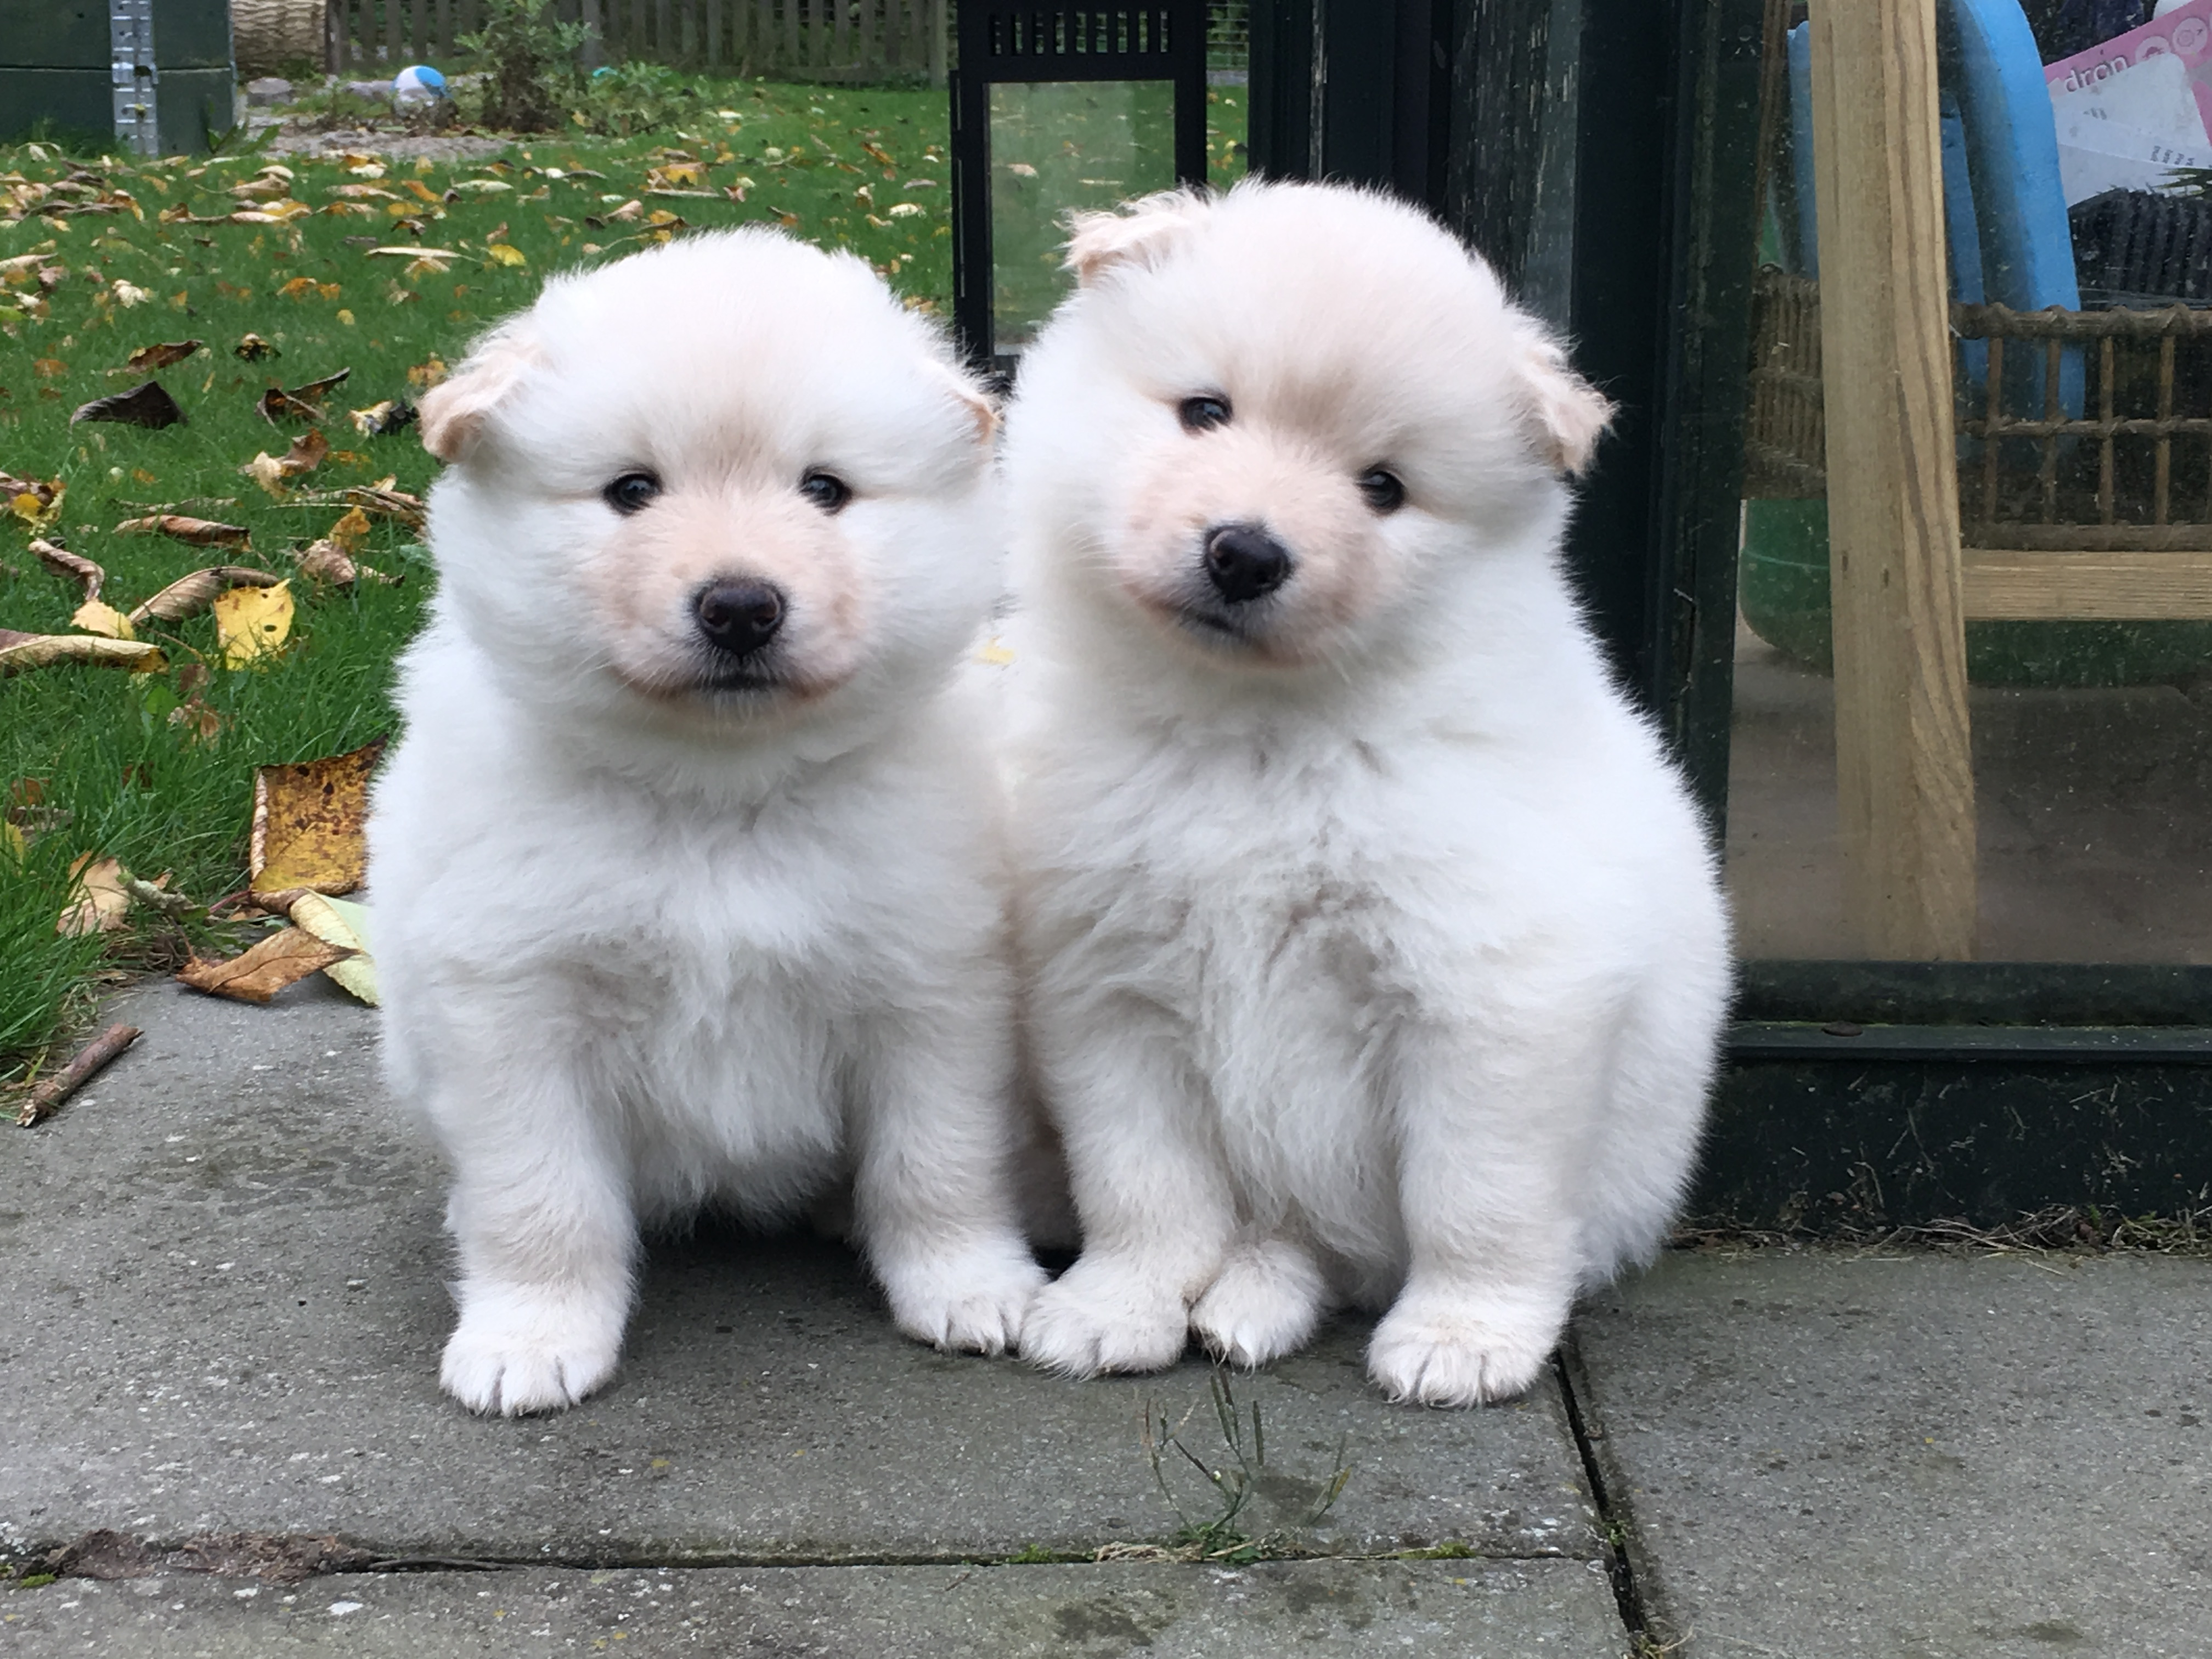 Kaunis Unelma Beautiful Miss Opal og Pyr